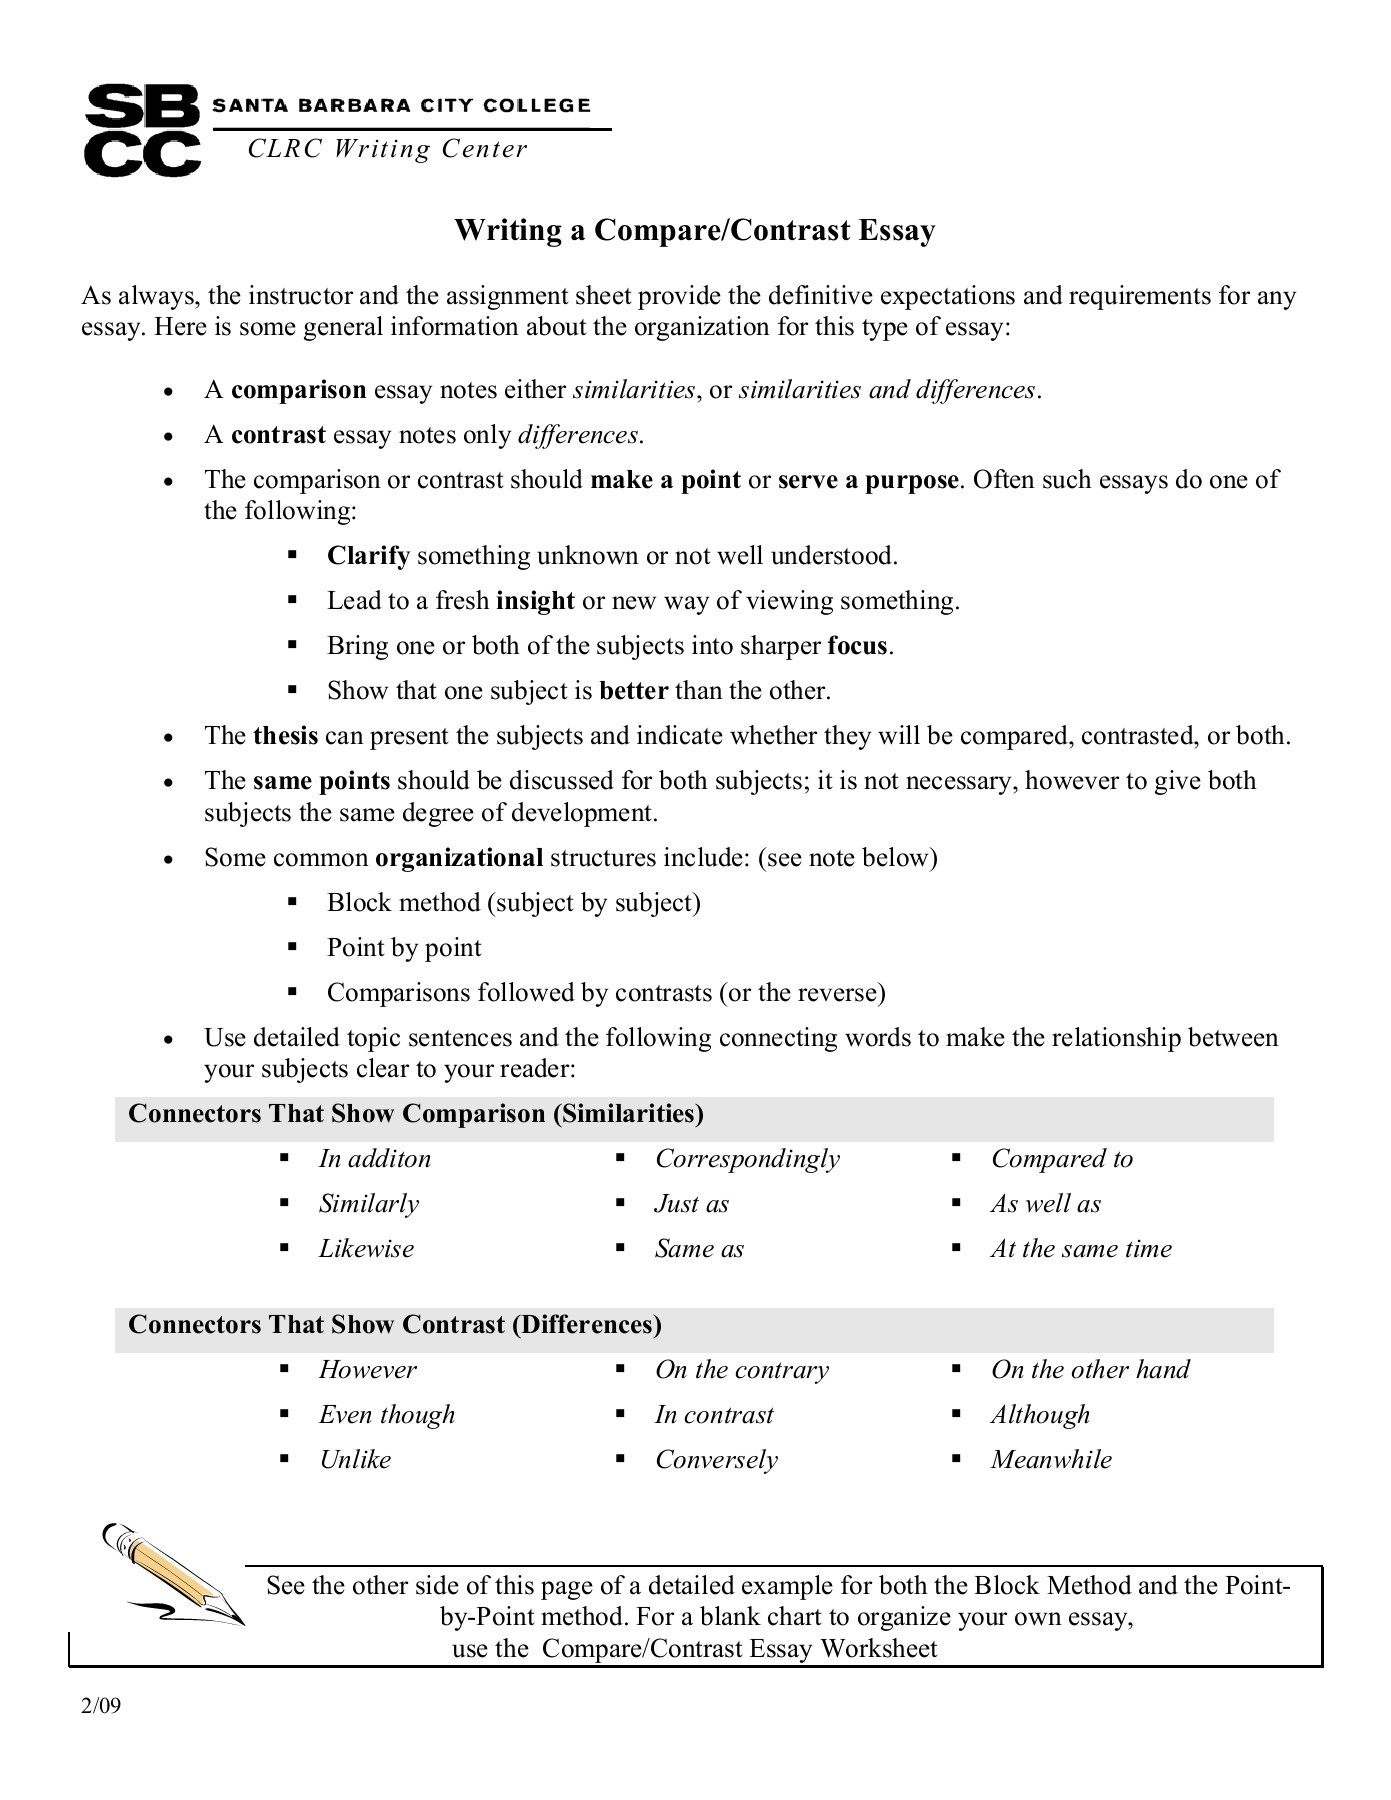 Application essay writing compare and contrast